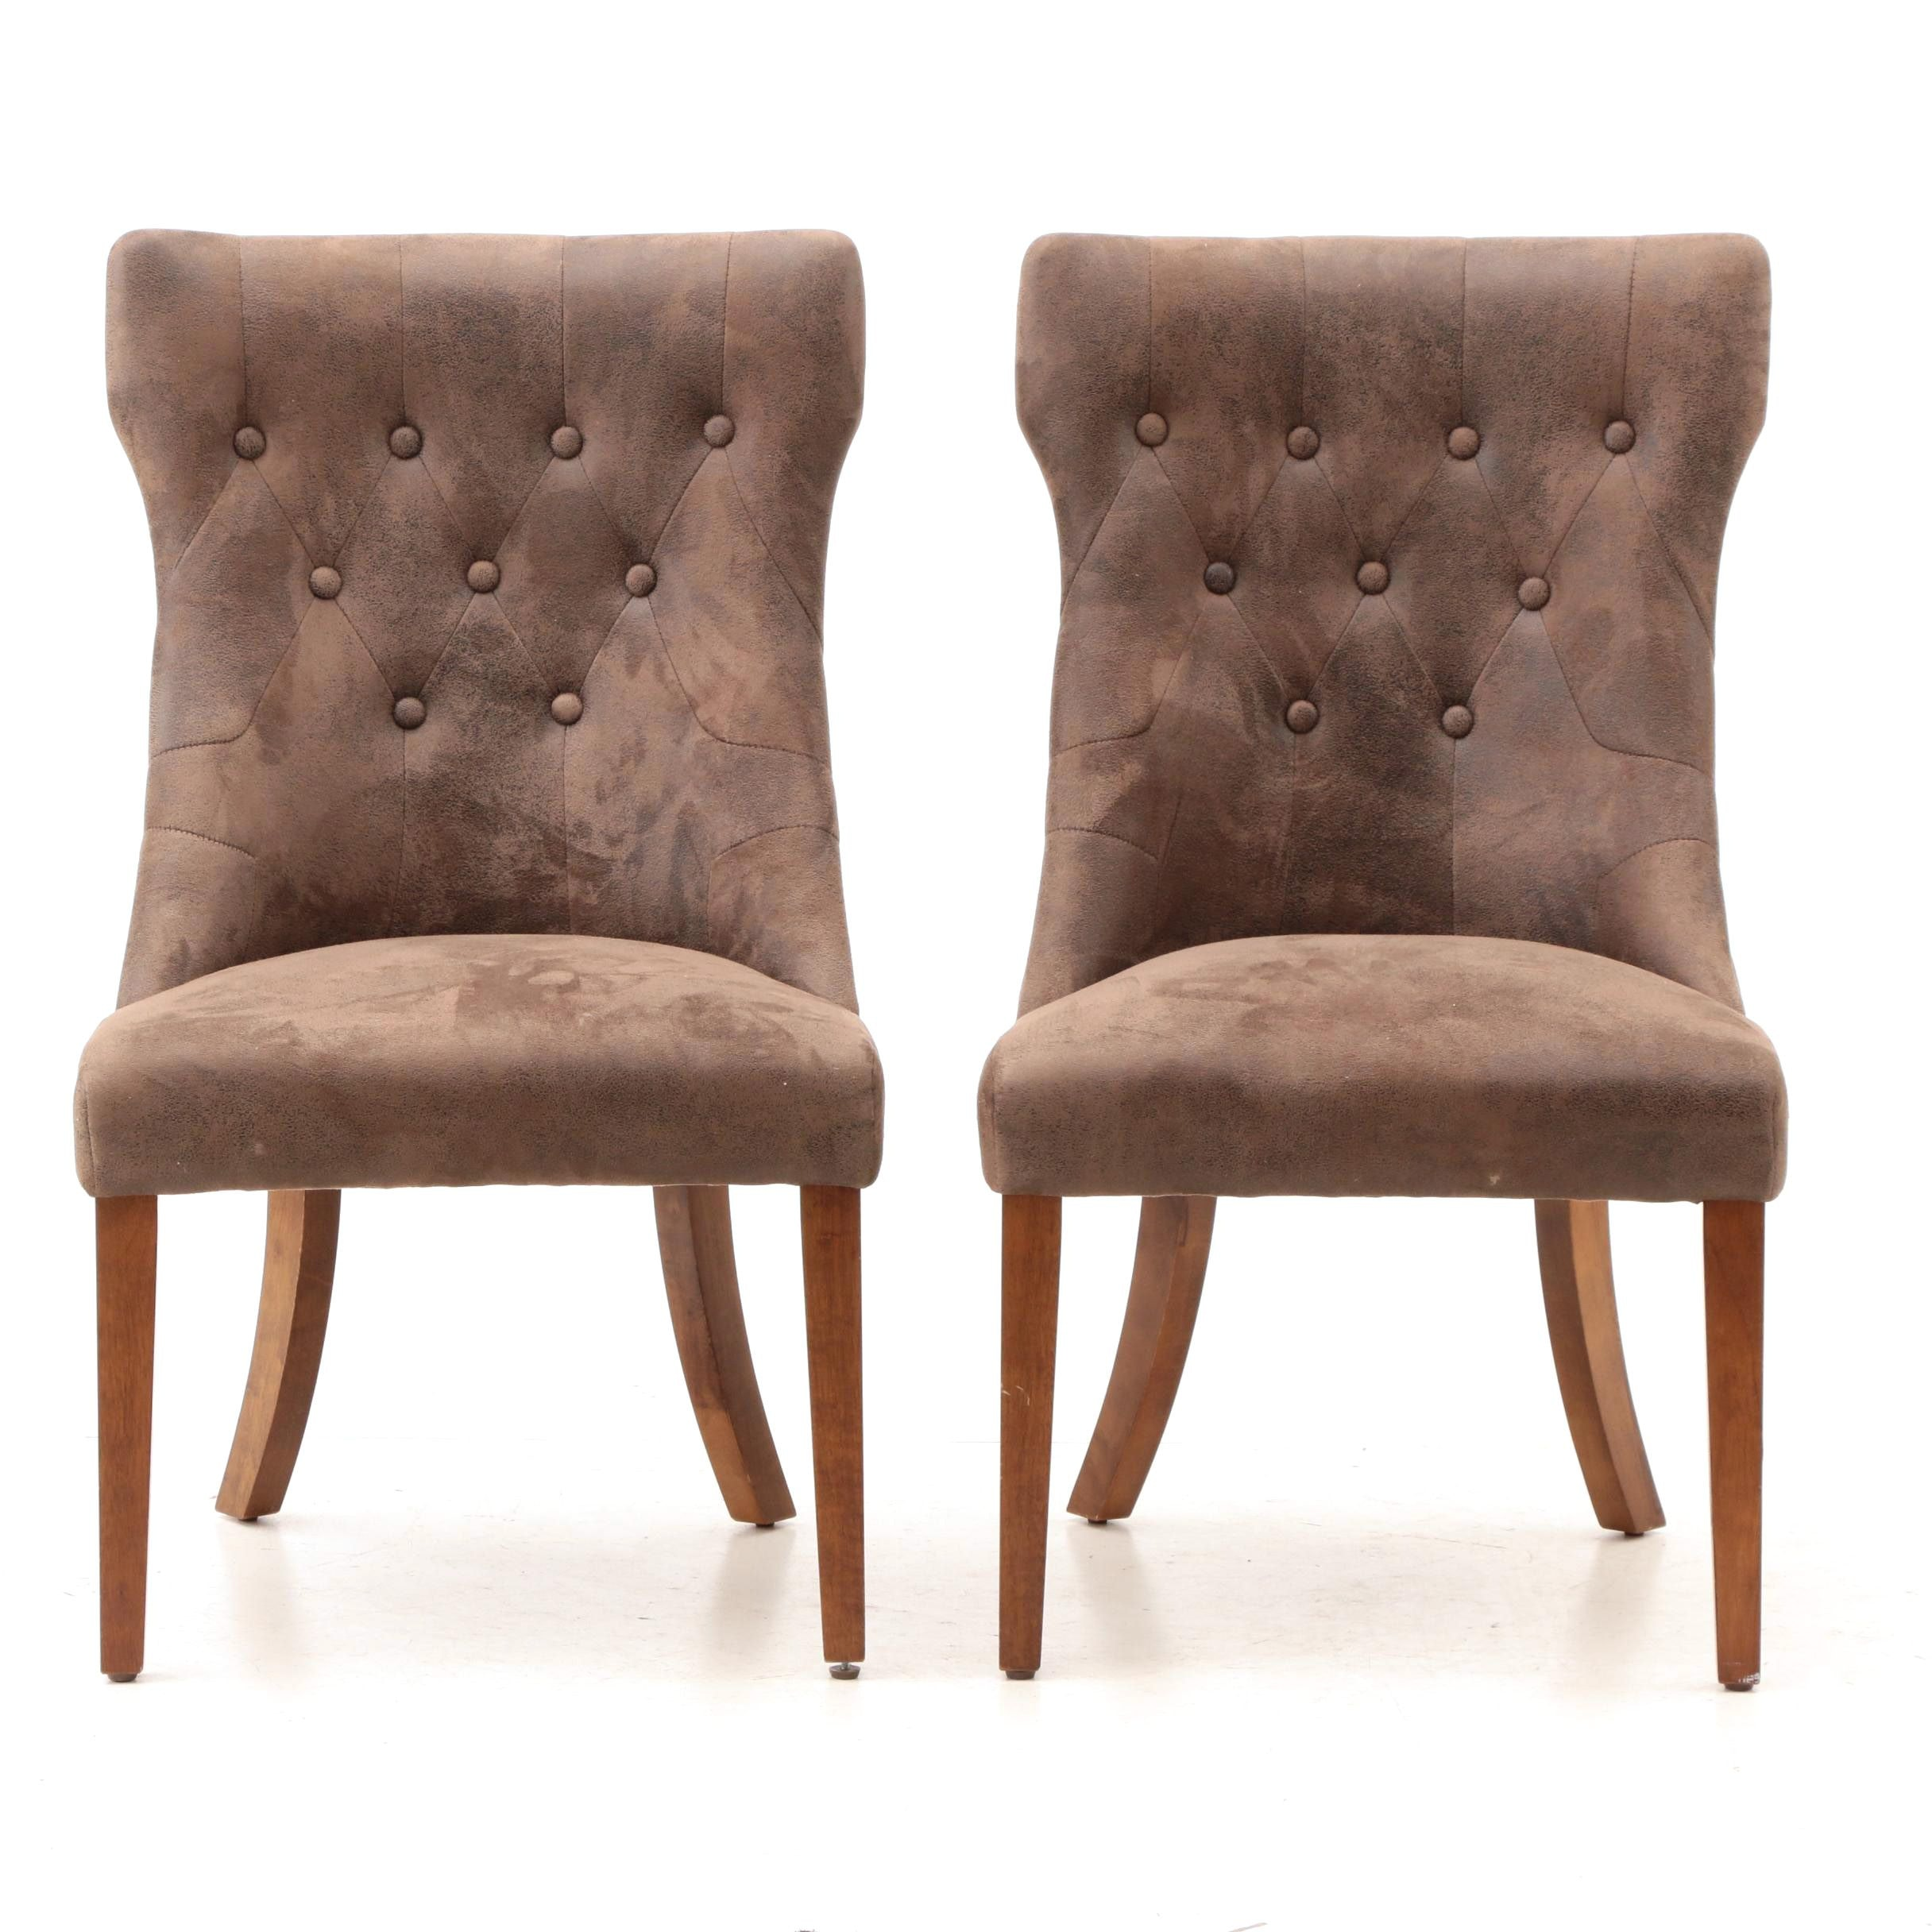 Contemporary Upholstered Accent Chairs in Brown